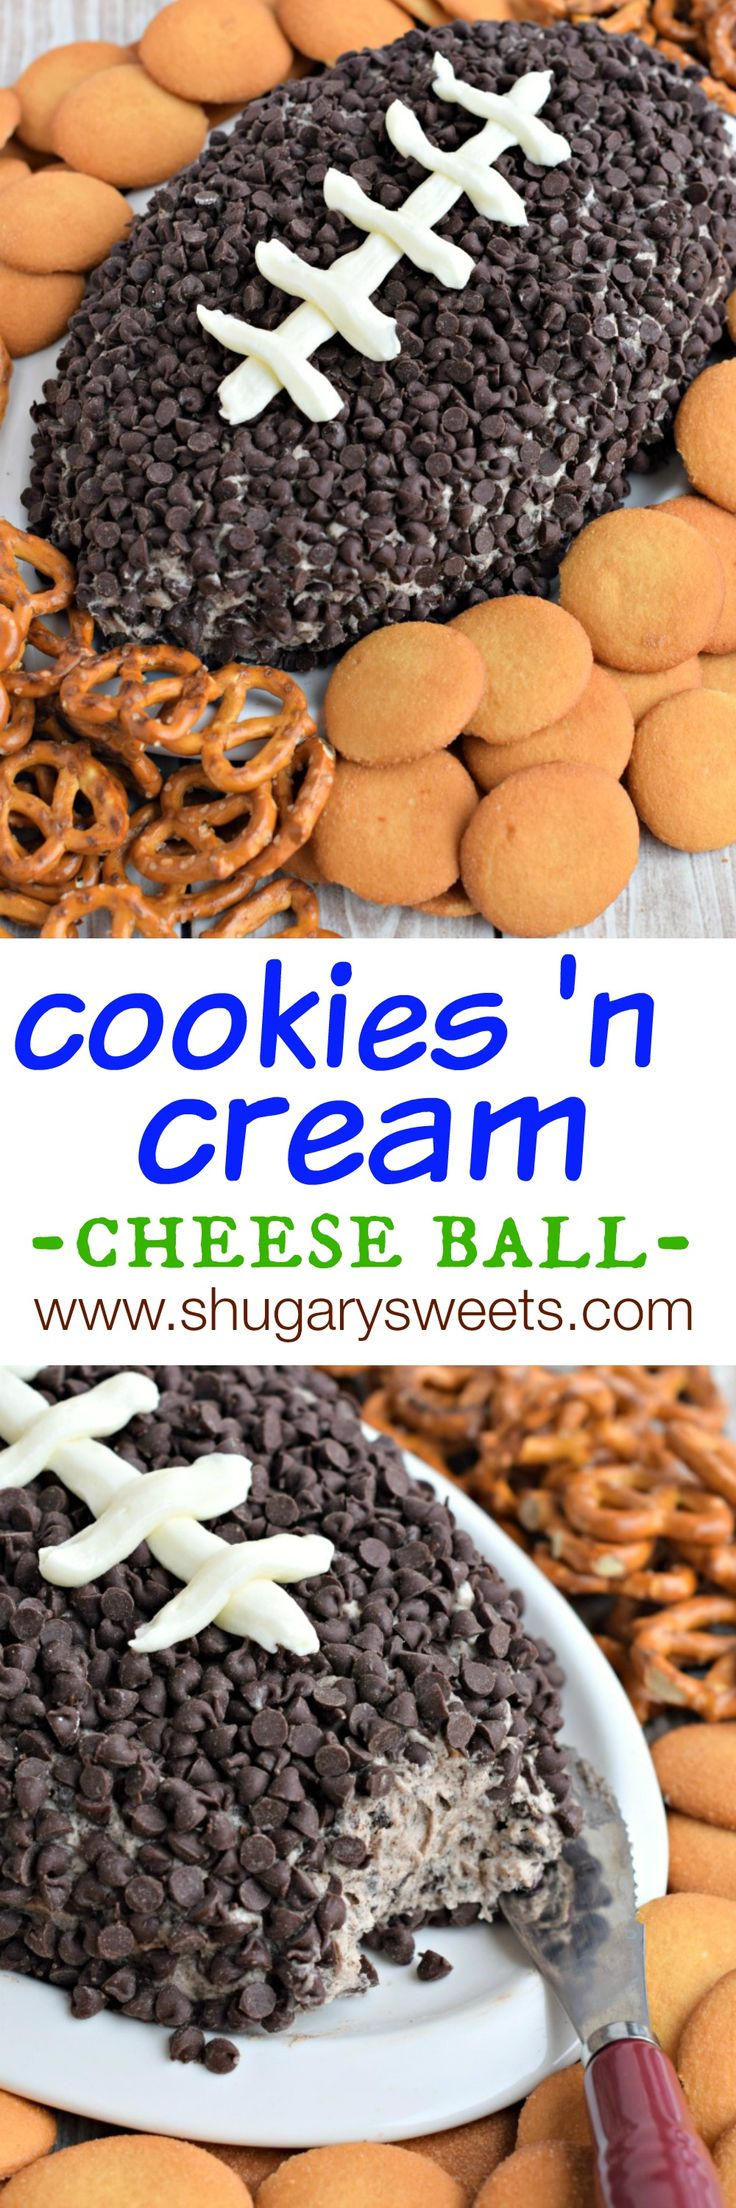 This Cookies and Cream Cheese Ball is fun and delicious! Shape like a football for your next game day party!